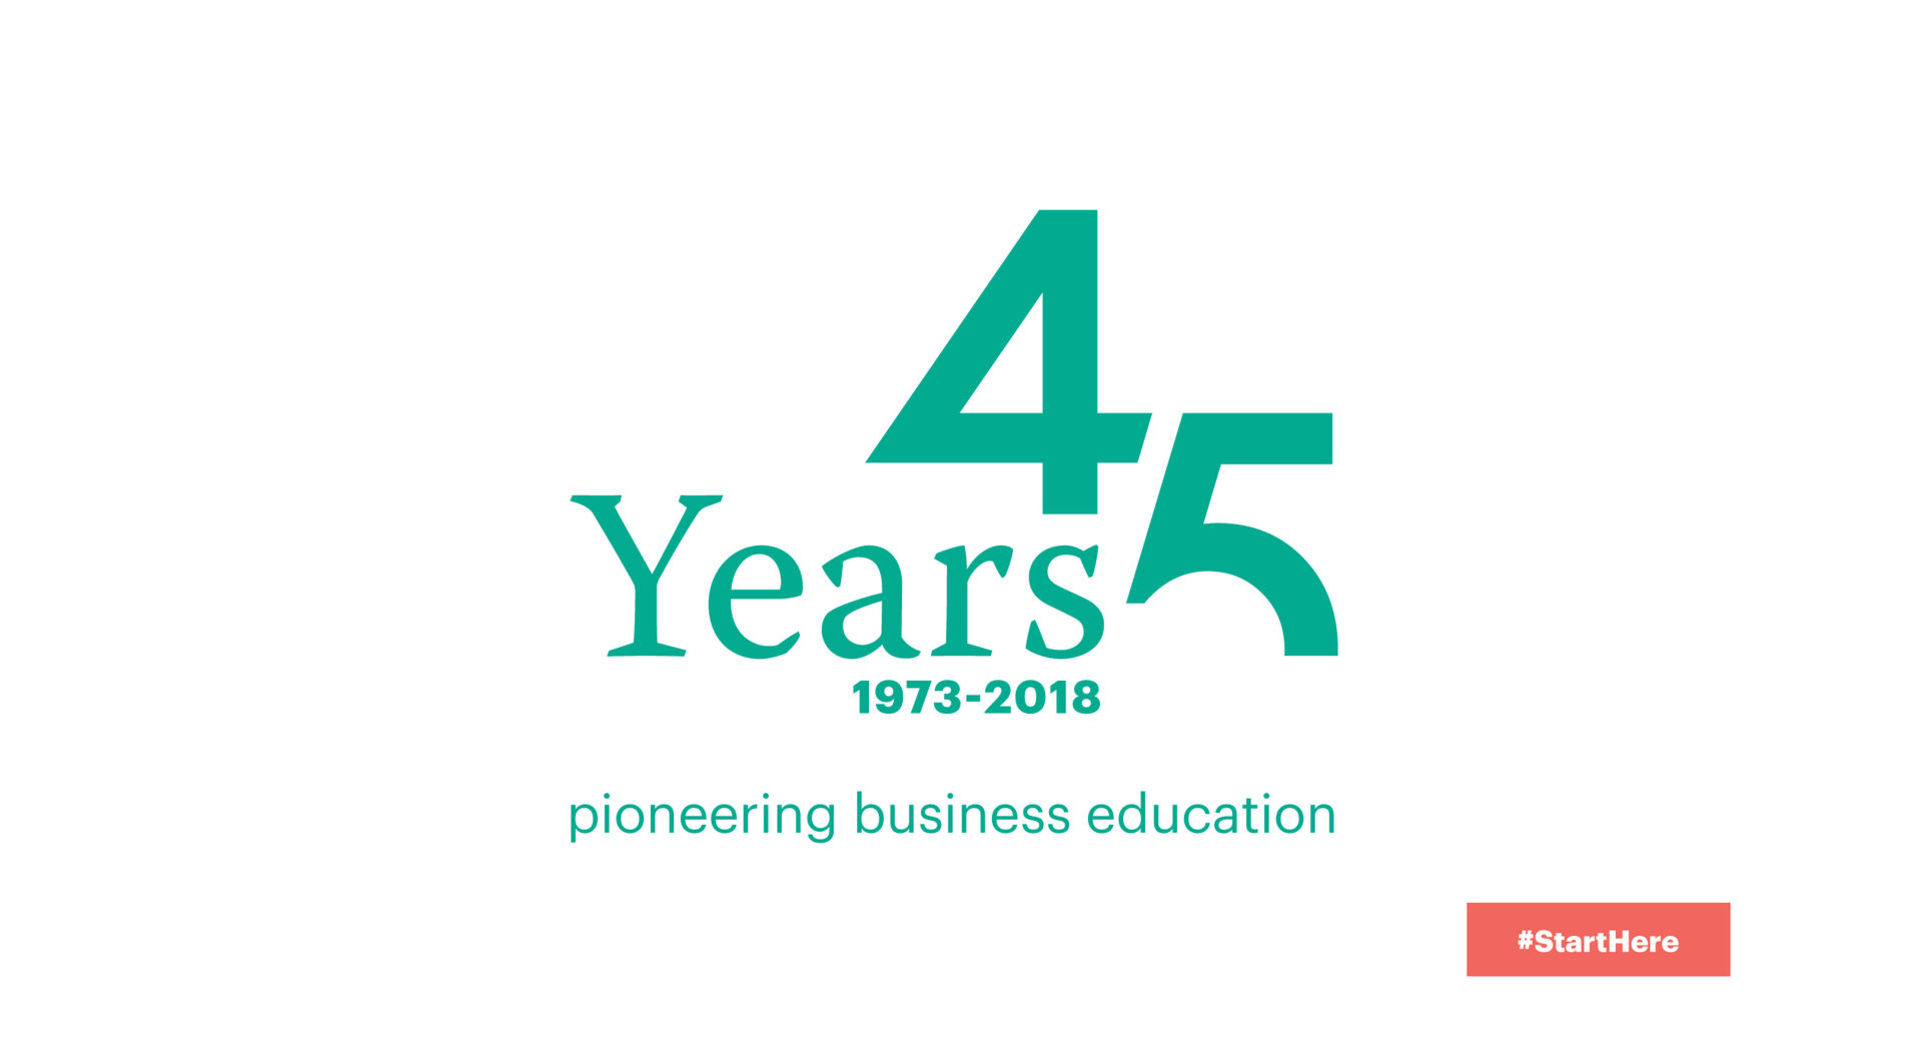 EU Business School 45th Anniversary